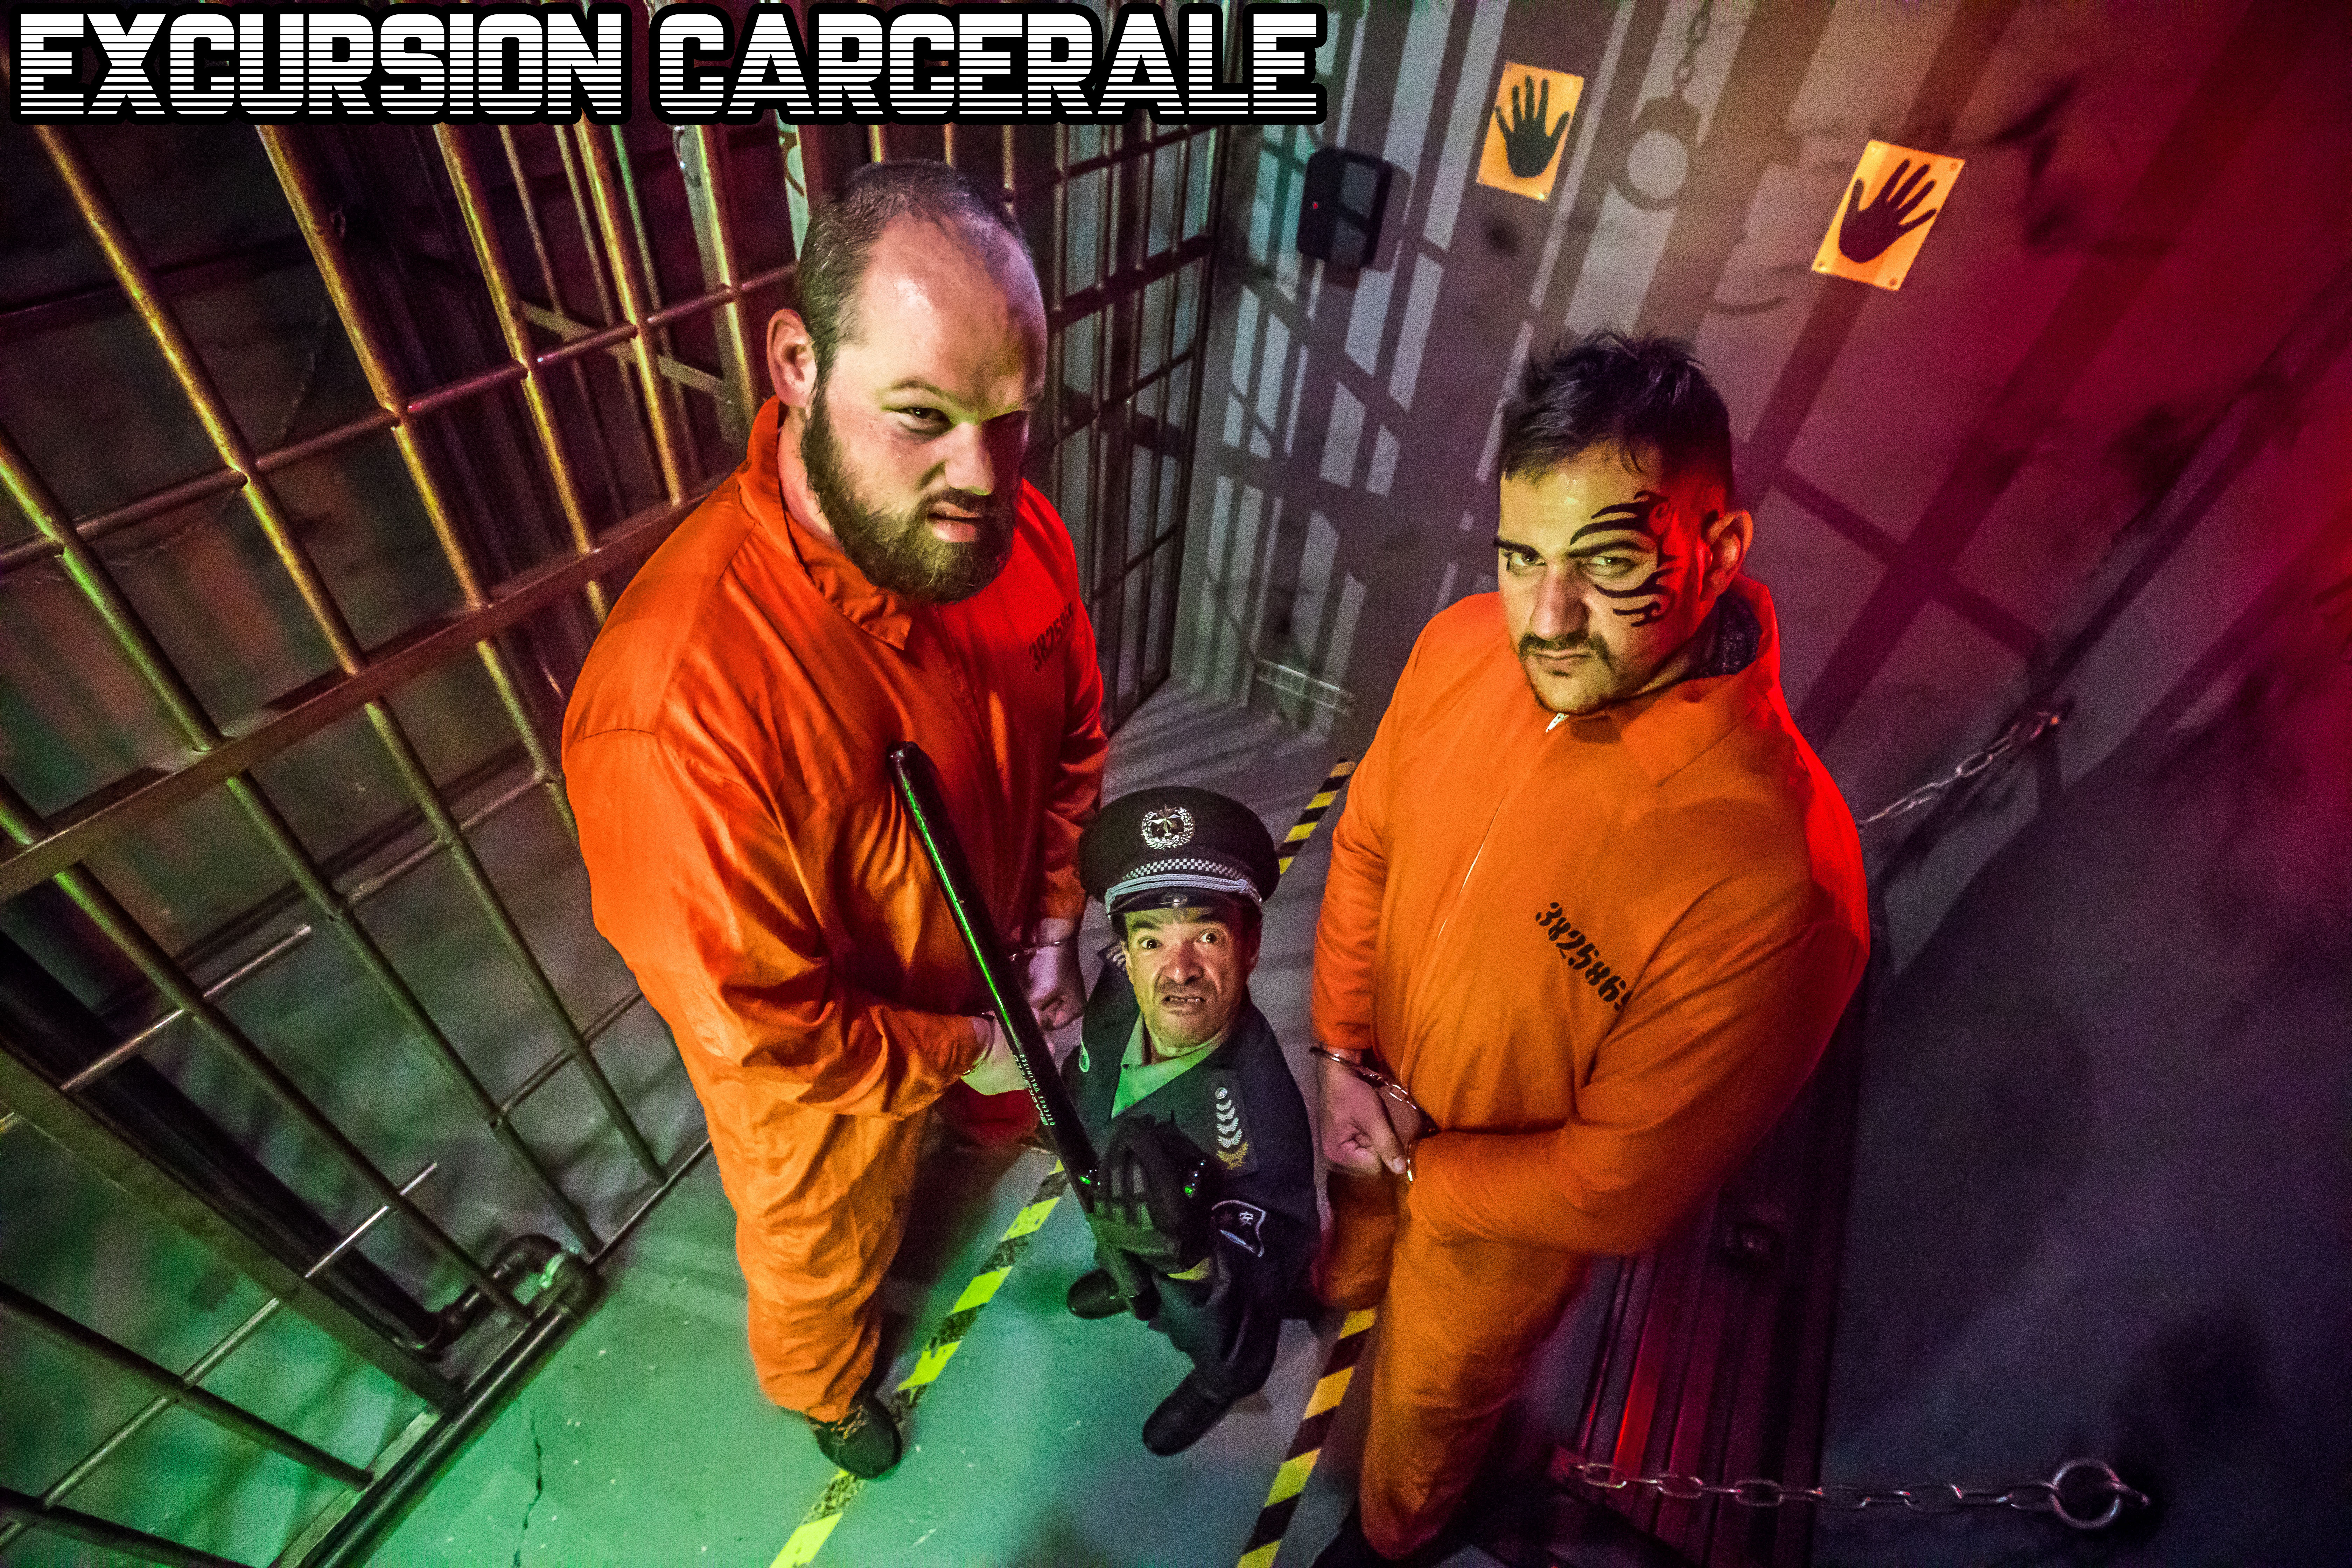 Mission Evasion – Escape Game Lyon